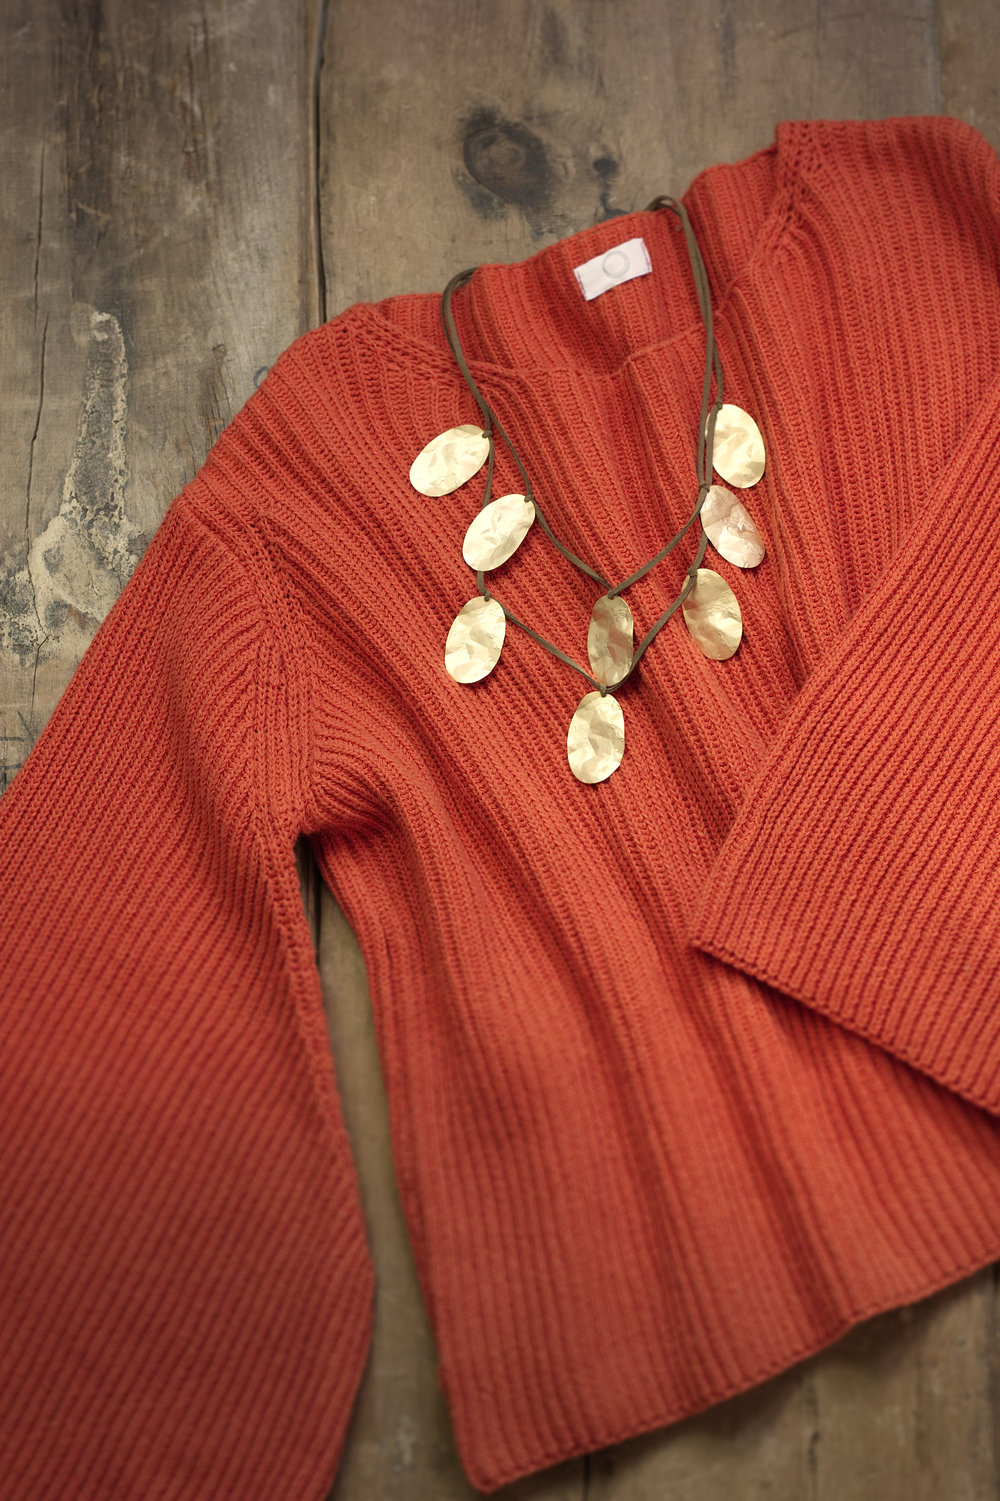 Cosy, orange jumper with bell sleeves, teamed with a gold-toned necklace.